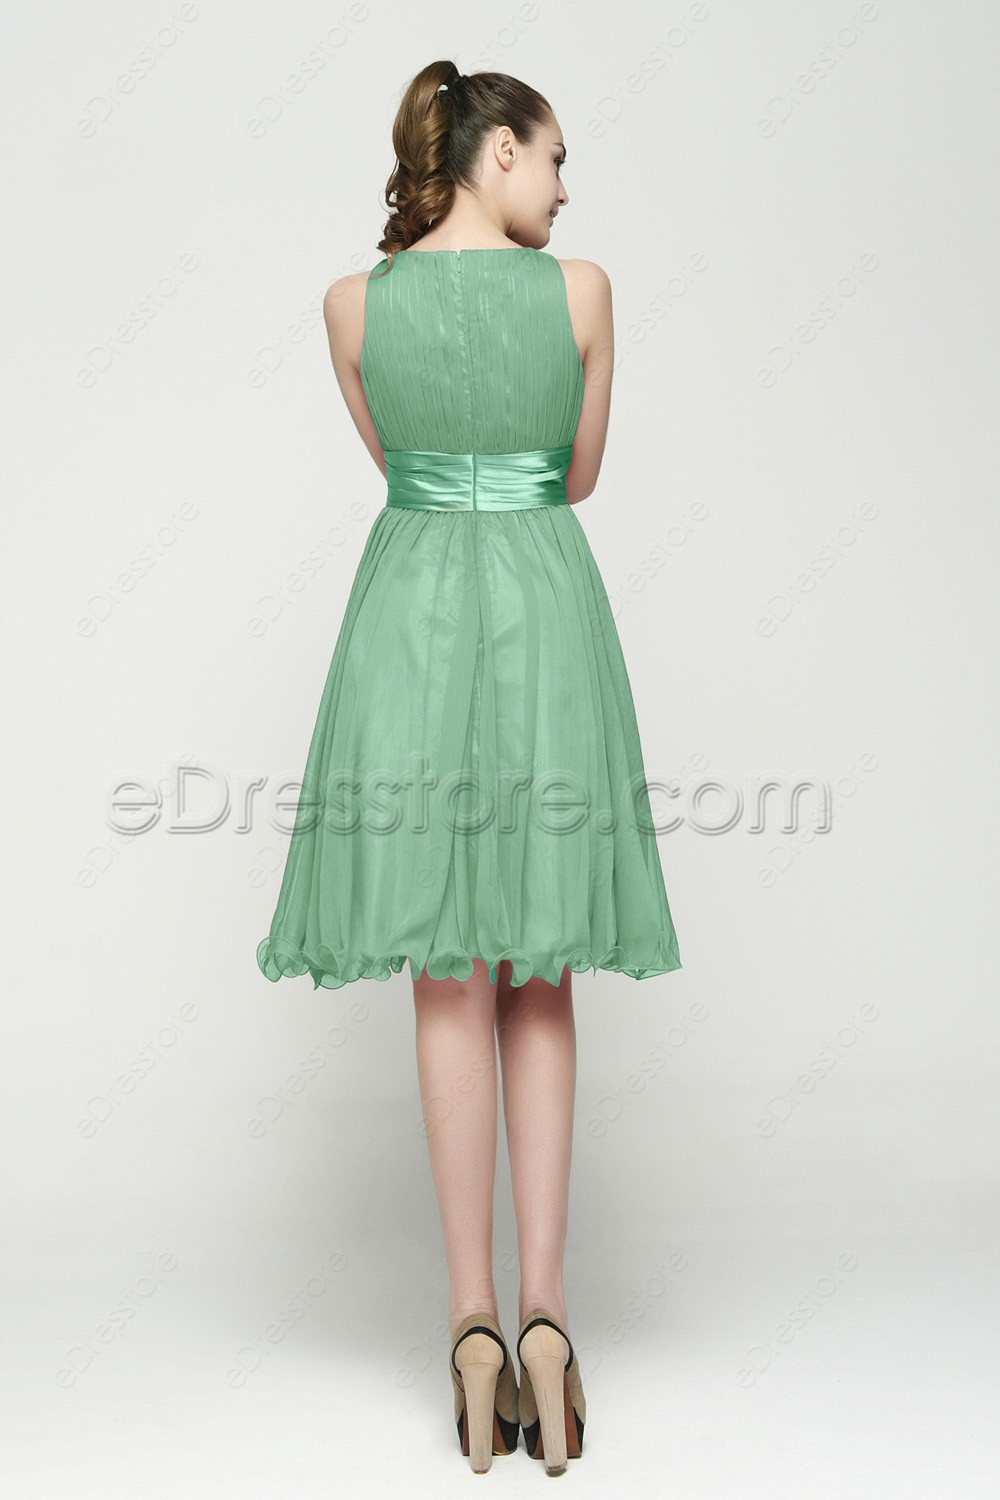 Modest pastel green bridesmaid dresses tea length for Pastel green wedding dress